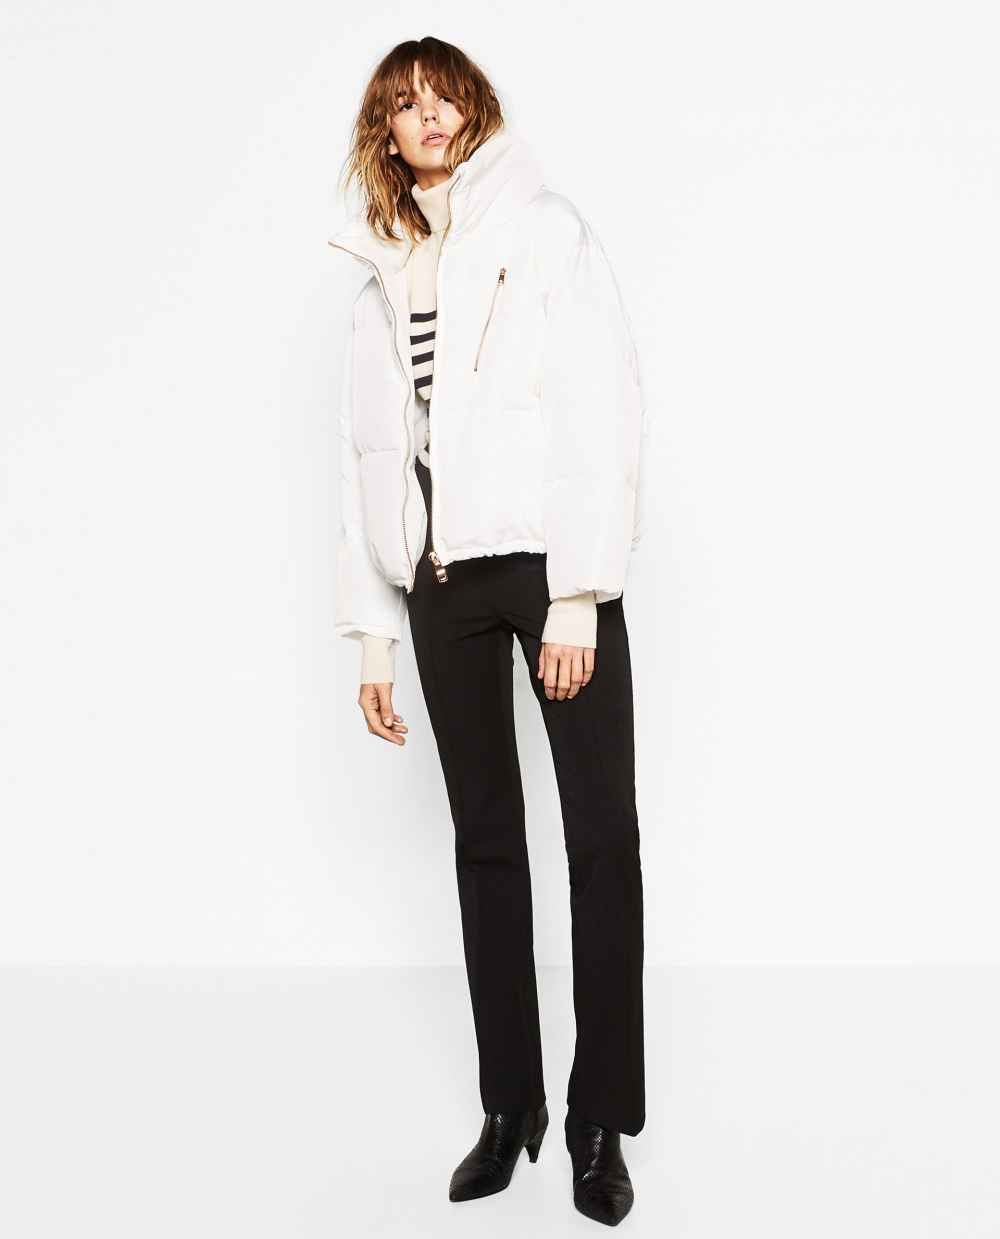 9a445110866 Zara s New Arrivals Will Get You Excited For Fall